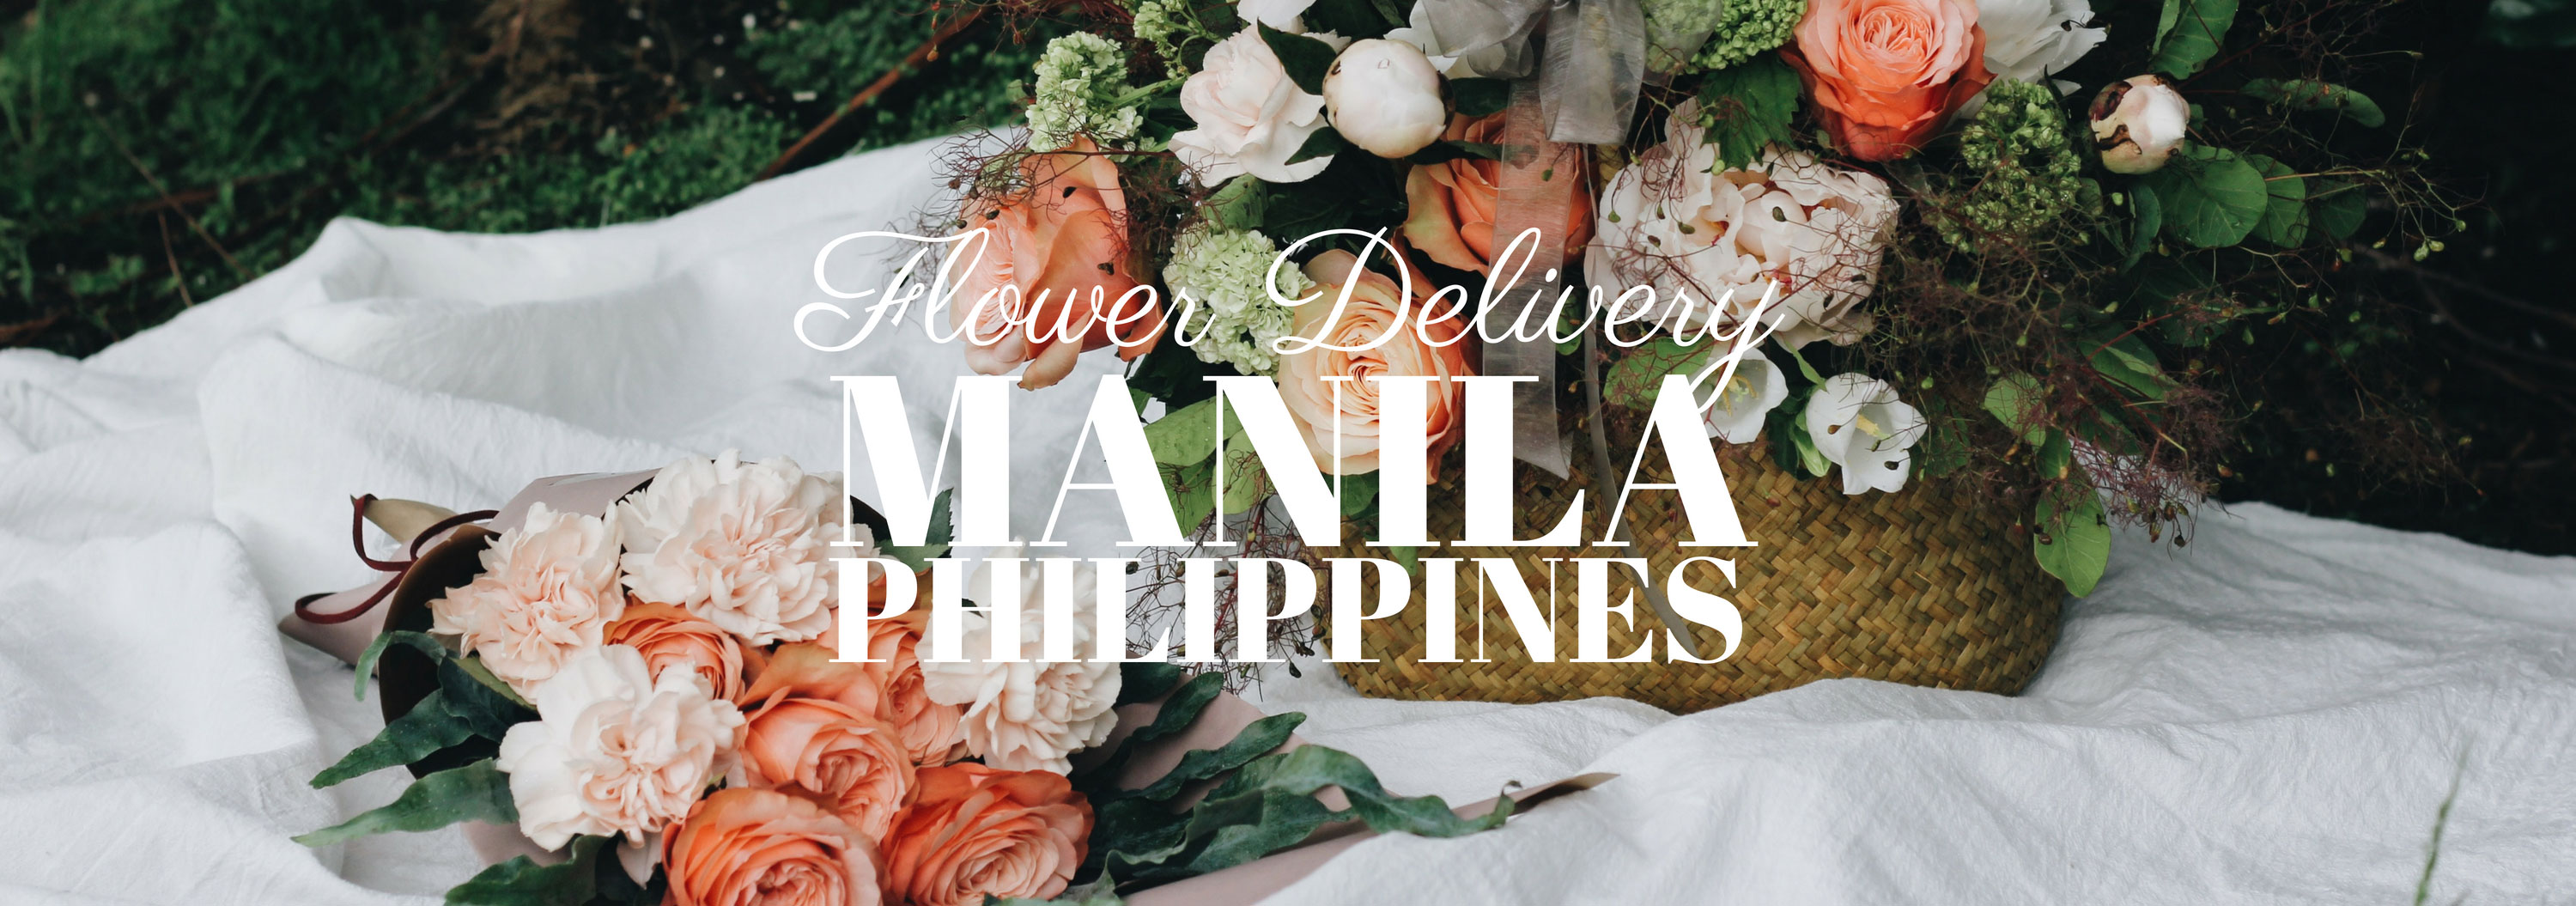 The 17 Best Options for Flower Delivery in Manila